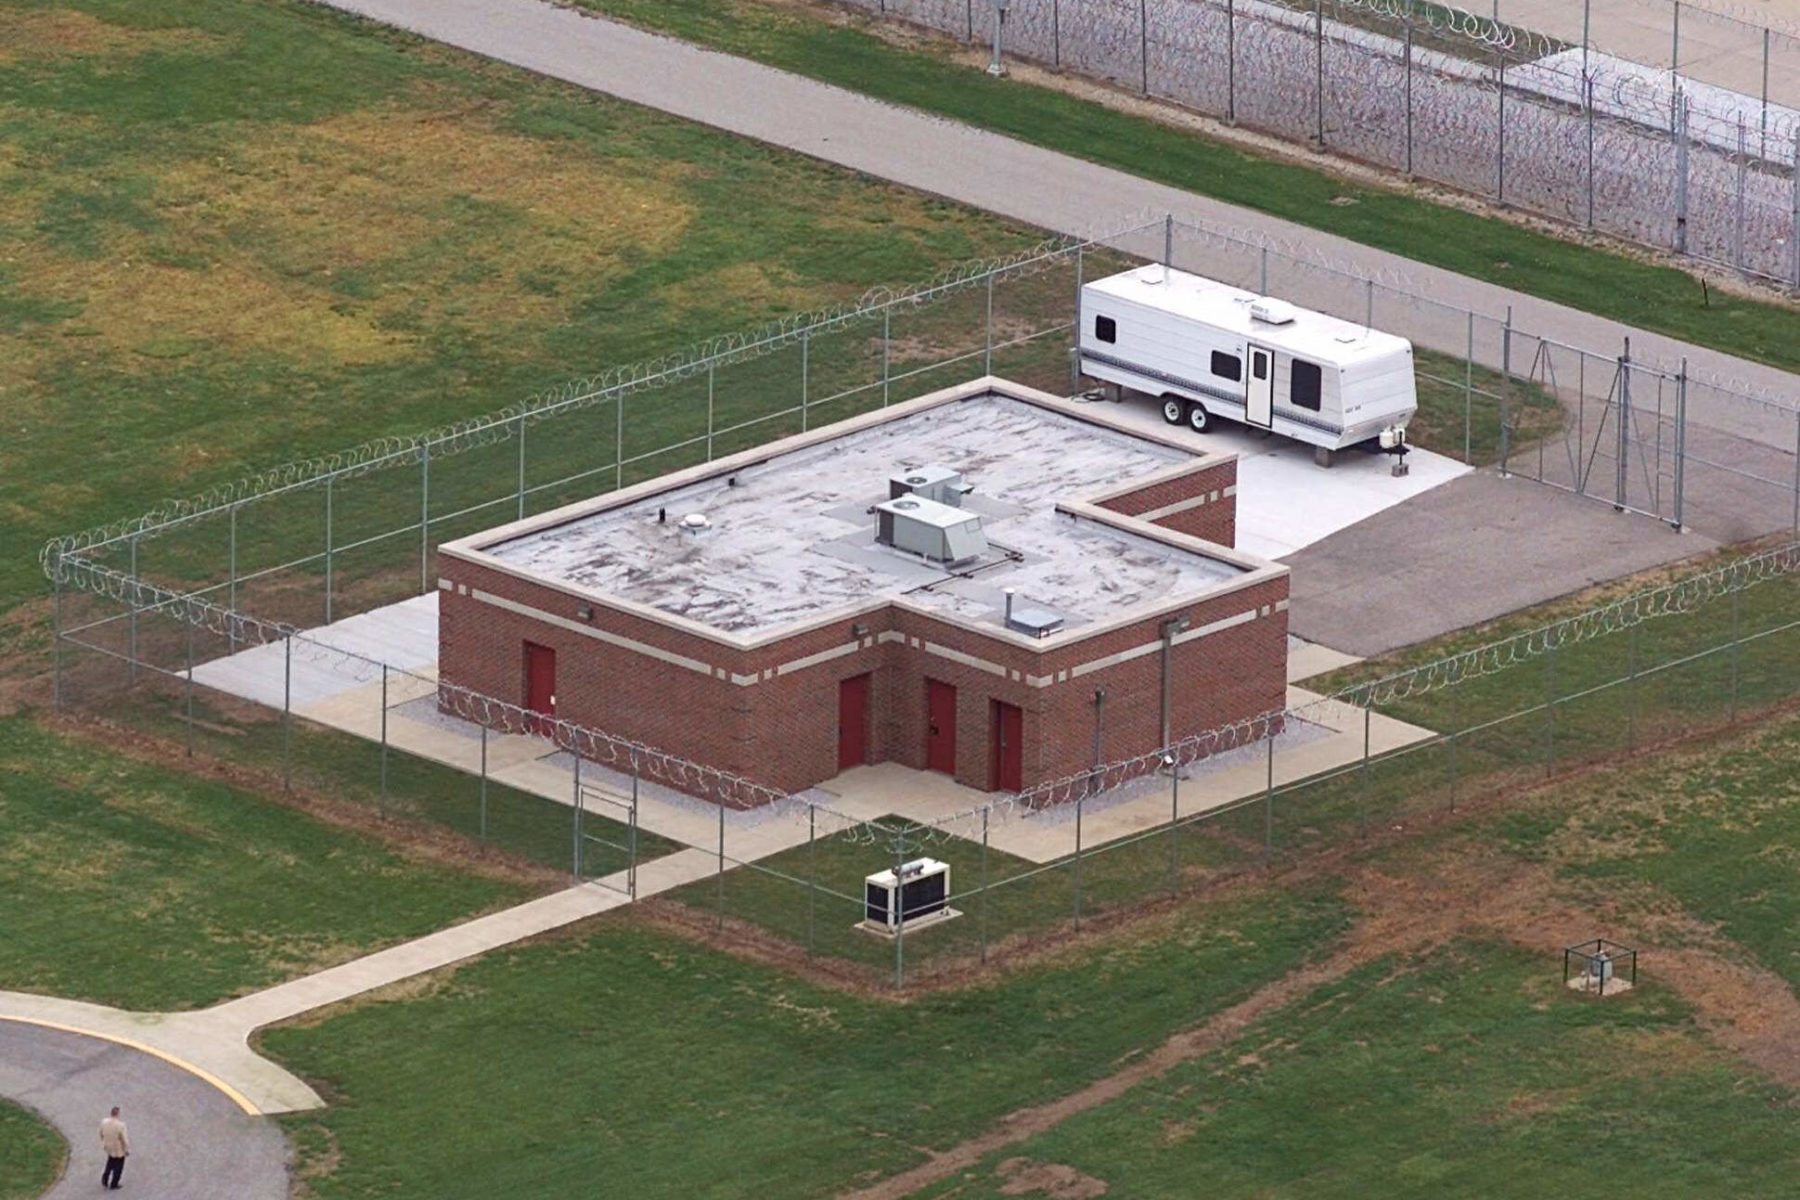 Lisa Montgomery to be executed one week before inauguration